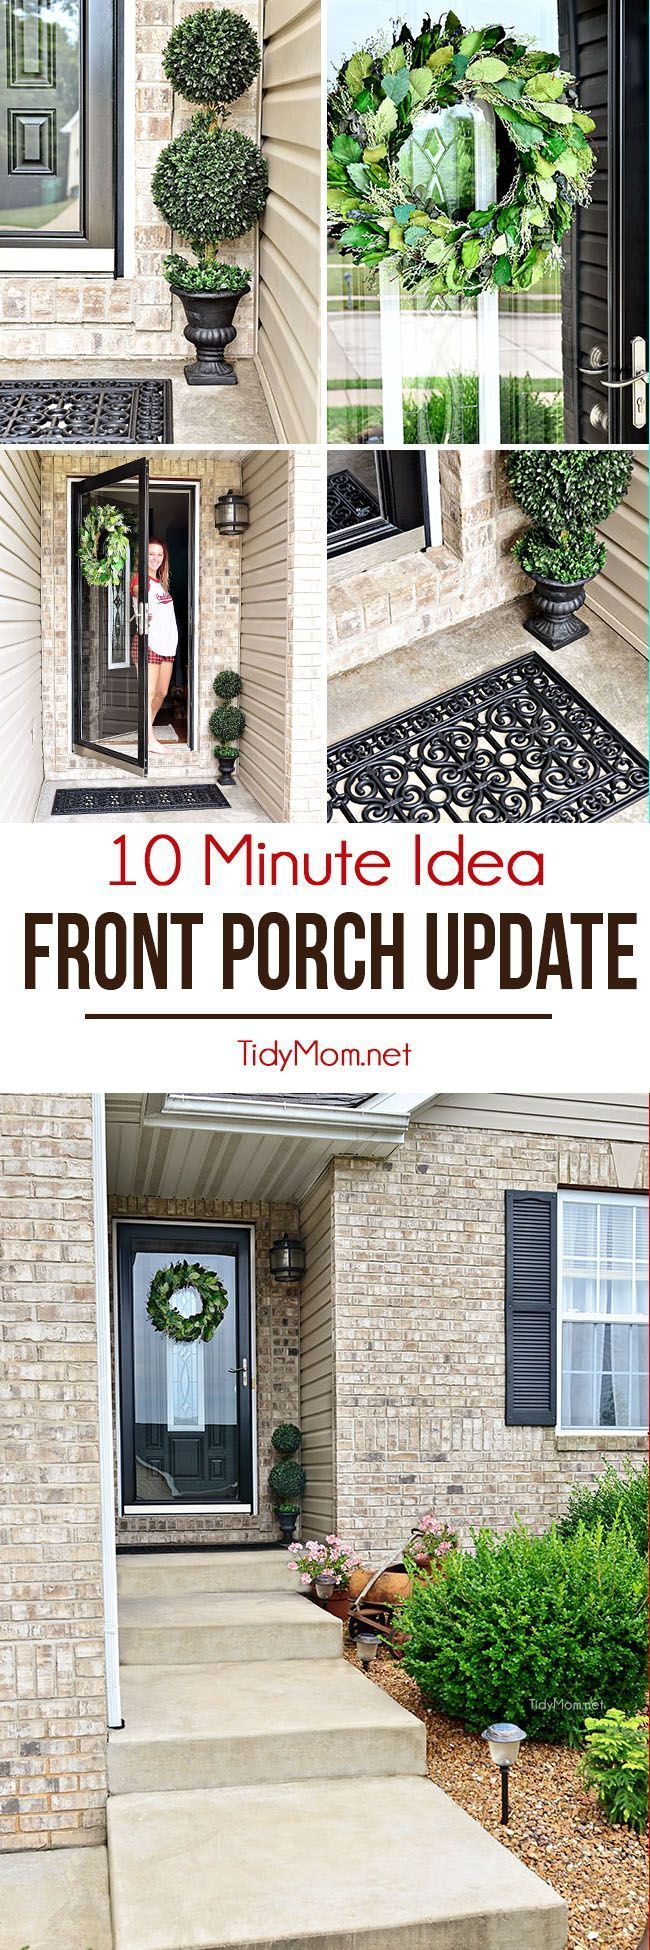 384 Best Images About Home Seasonal Porch Ideas On